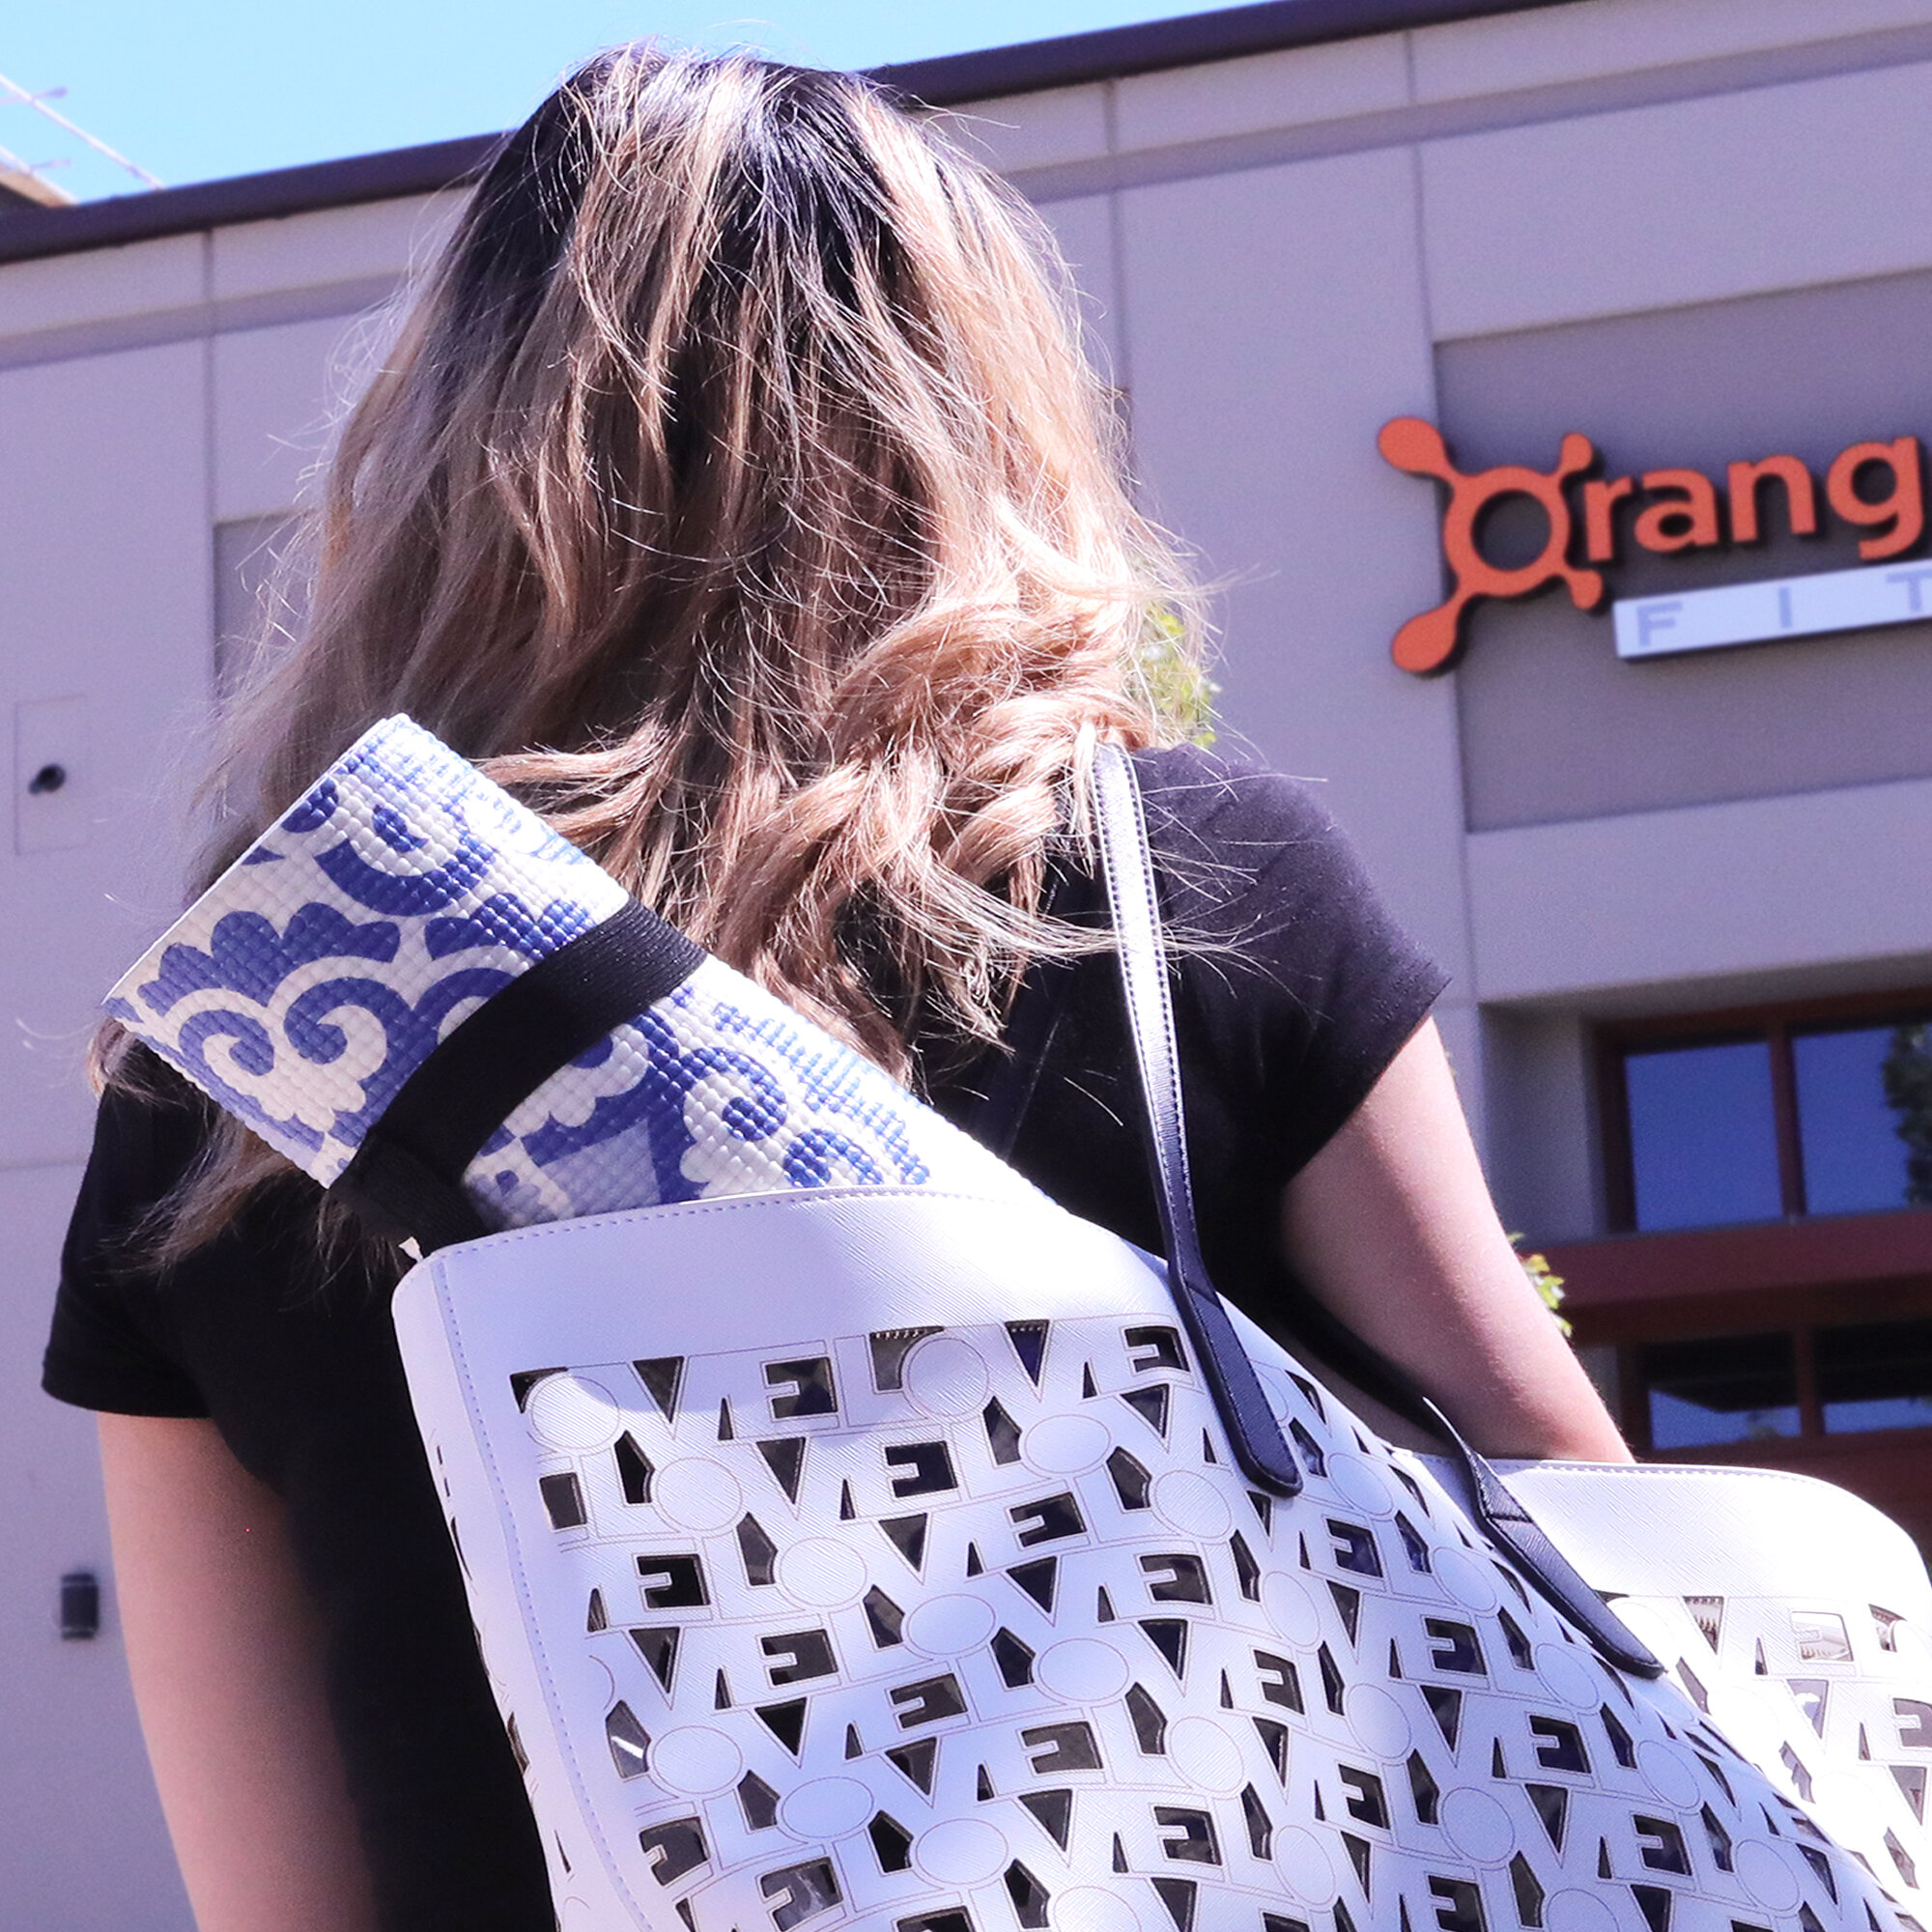 White Tote (Orange Theory Background).jpg